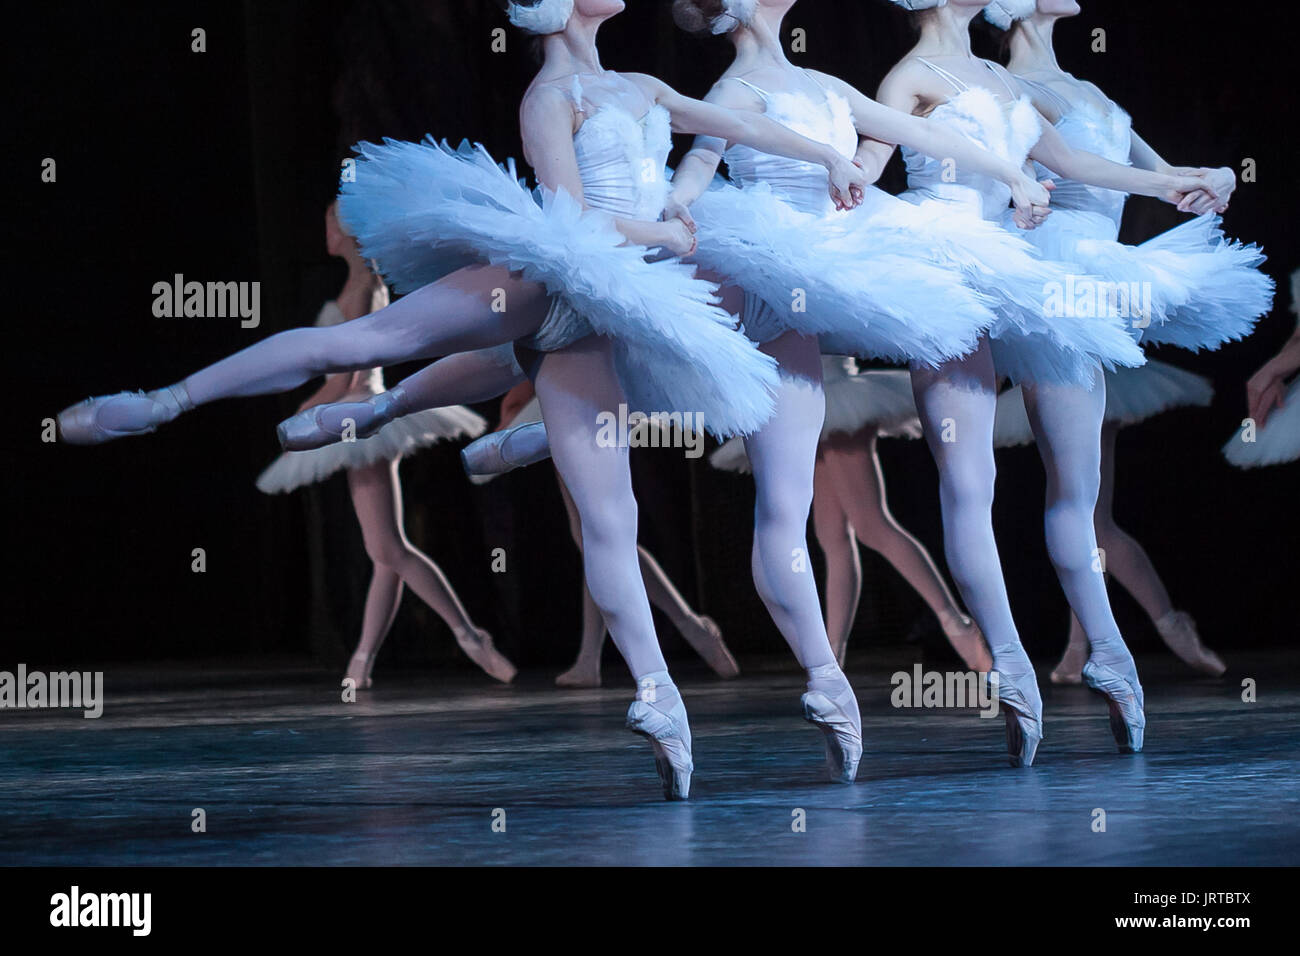 beauty, agility, dancing concept. arm in arm four elegant and graceful female ballet dancers, playing the roles of petite swans, moving, dancing and jumping synchronously - Stock Image